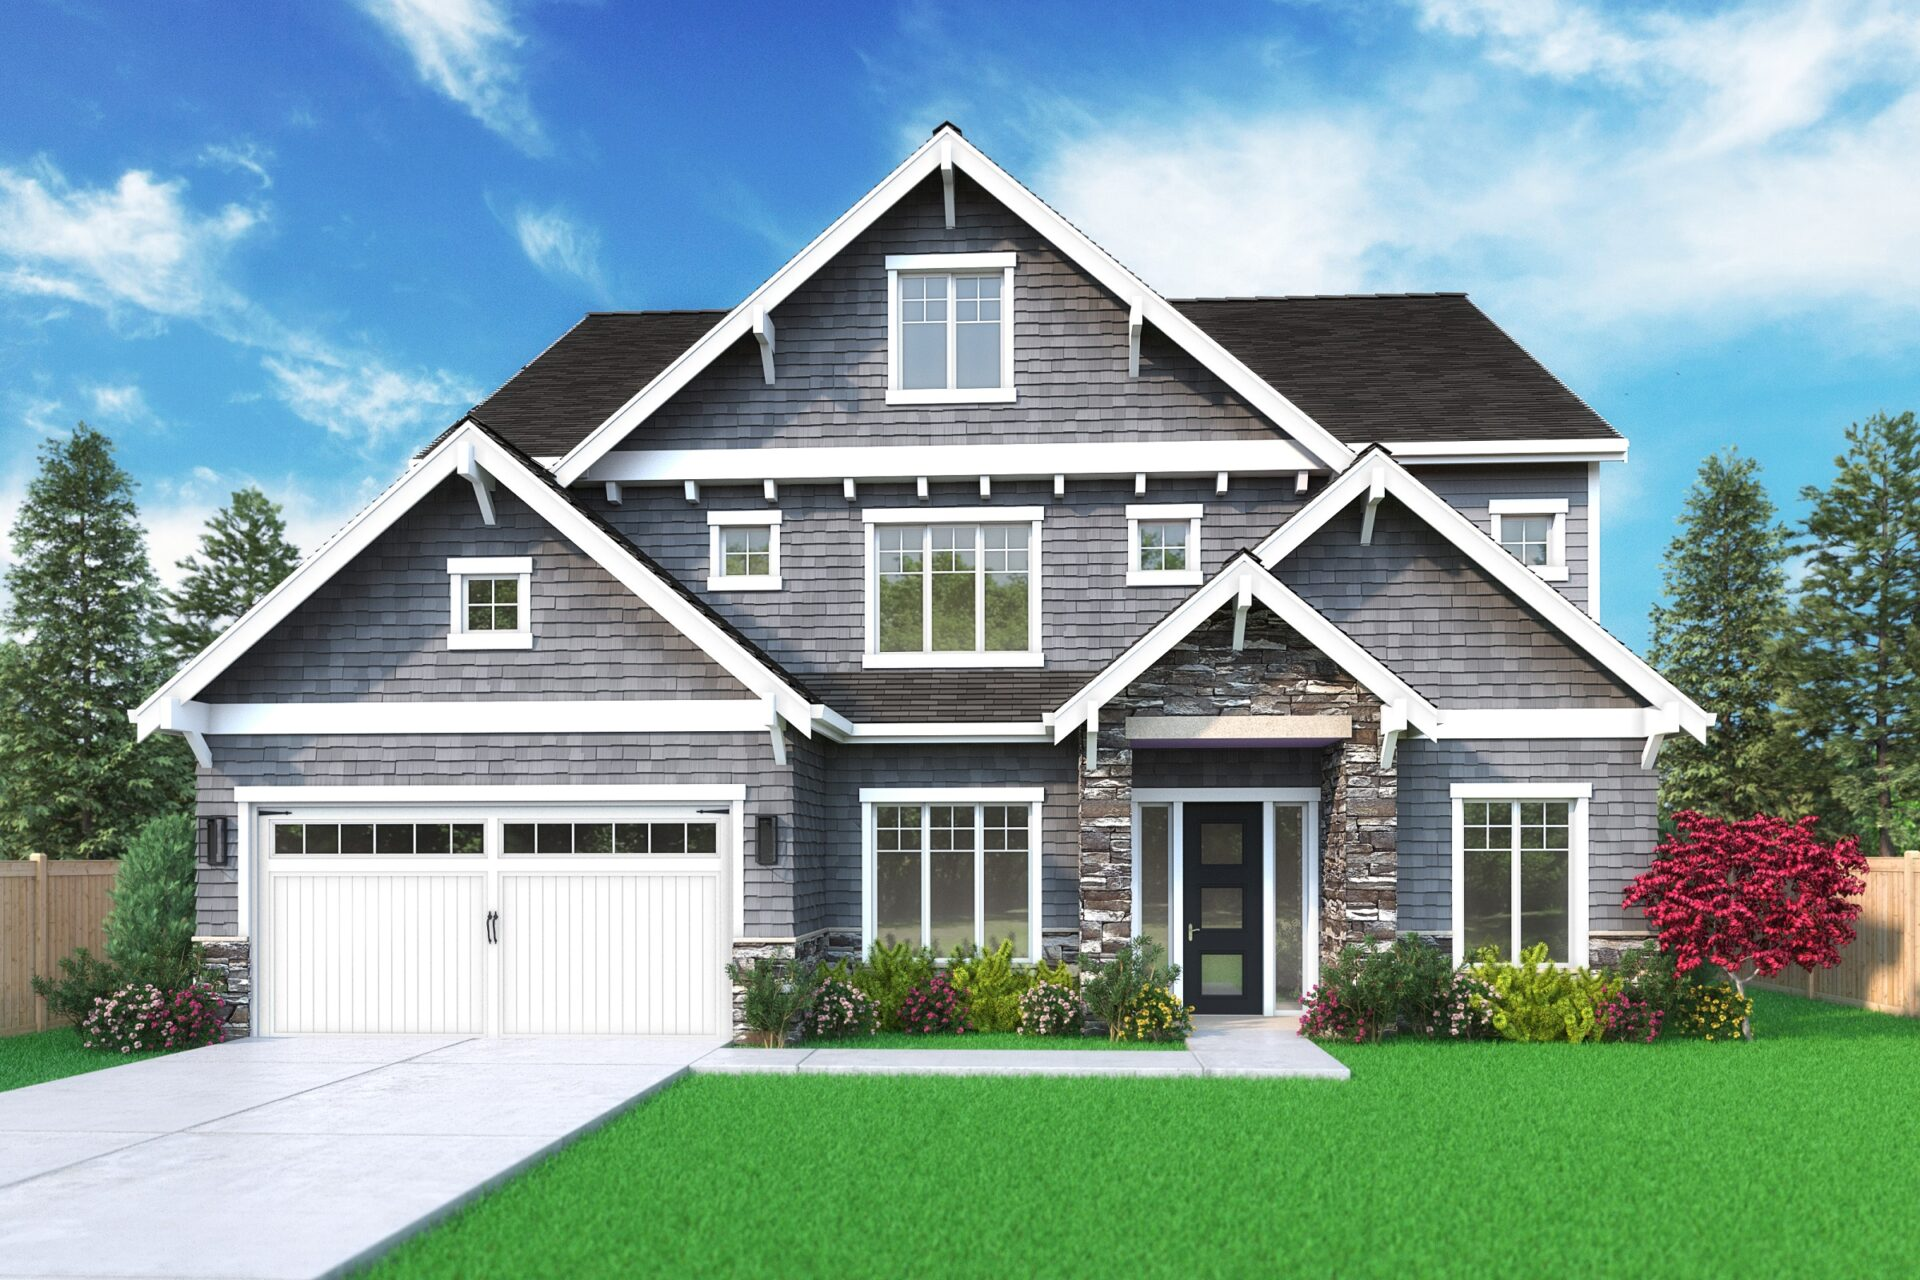 View our new luxury home construction on 17216 NE 15th PL, in Bellevue, WA from MN Custom Homes